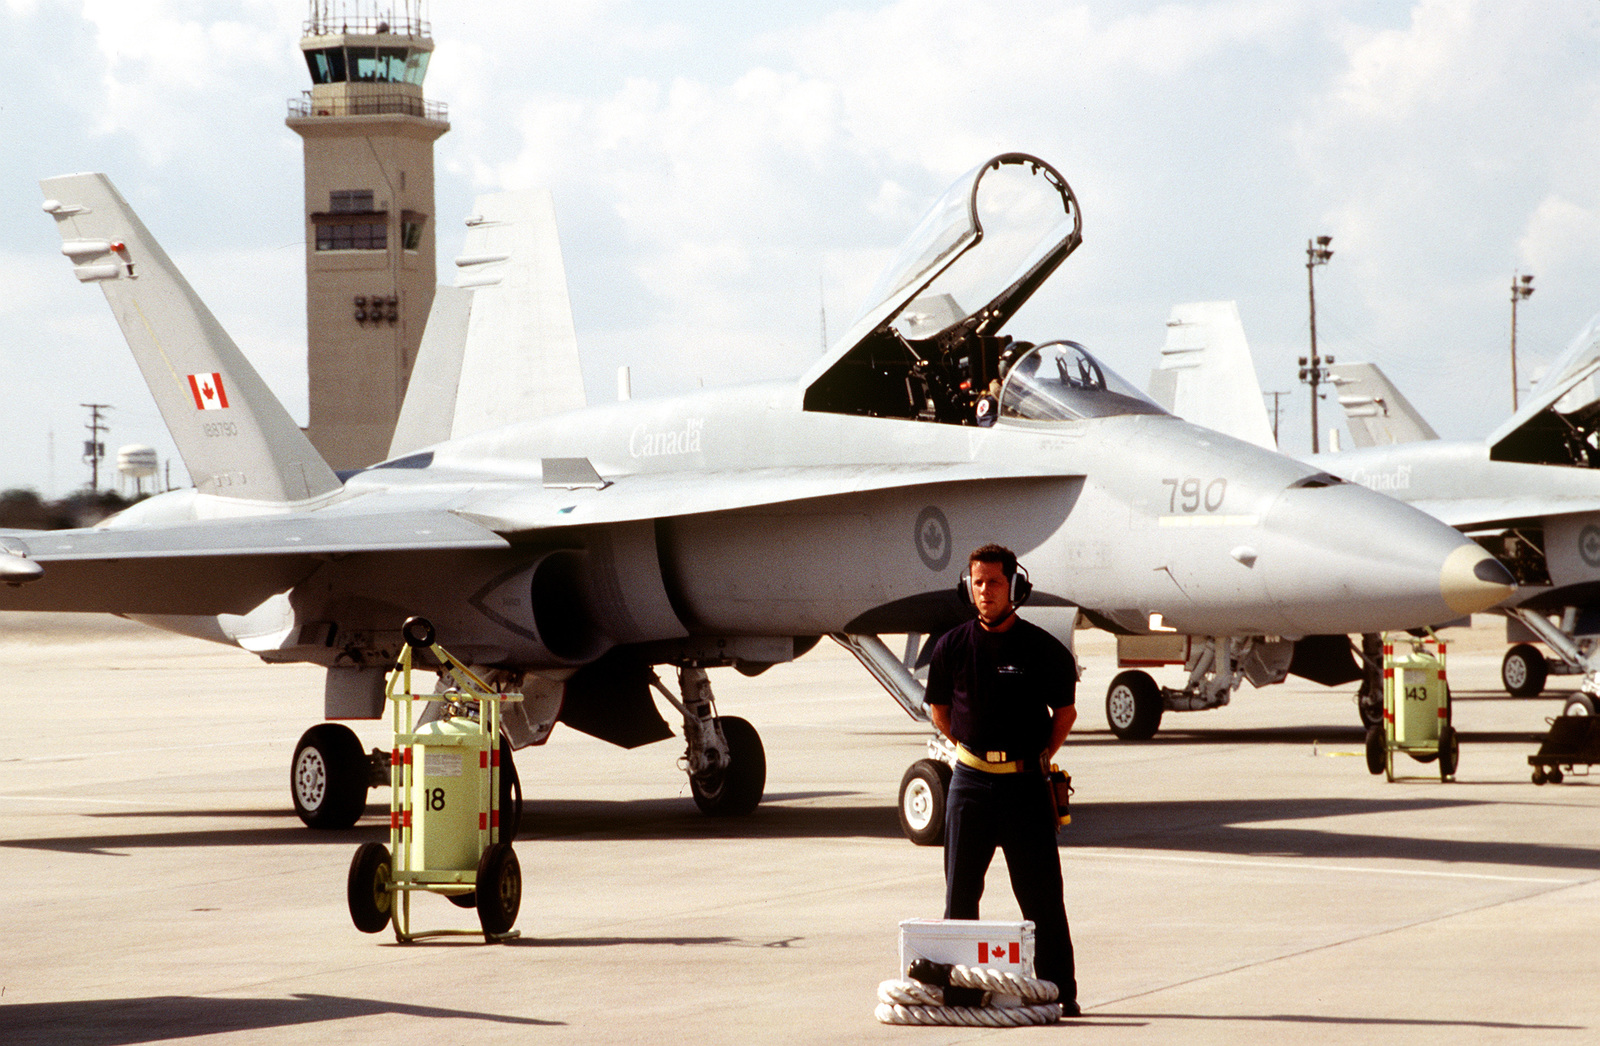 CPL. Pierre Brisson, a crew chief from the 3rd Fighter Wing, Canadian Air Force, awaits the departure of his CF-18 fighter aircraft for a mission profile sortie during the competition